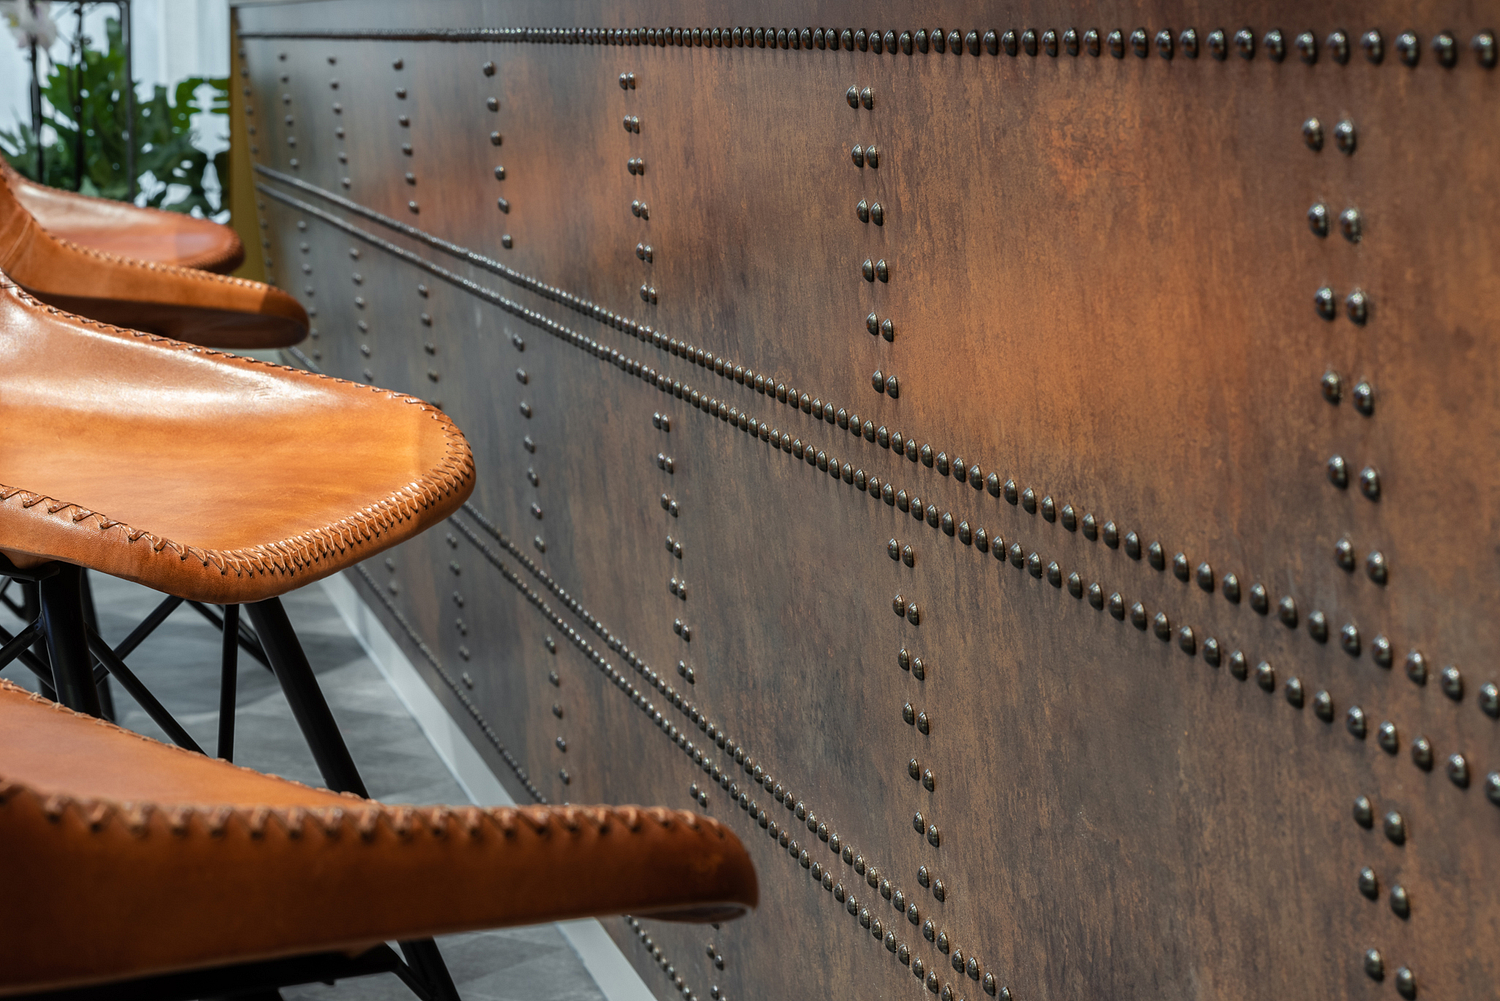 Rust effect reception desk detail with studs